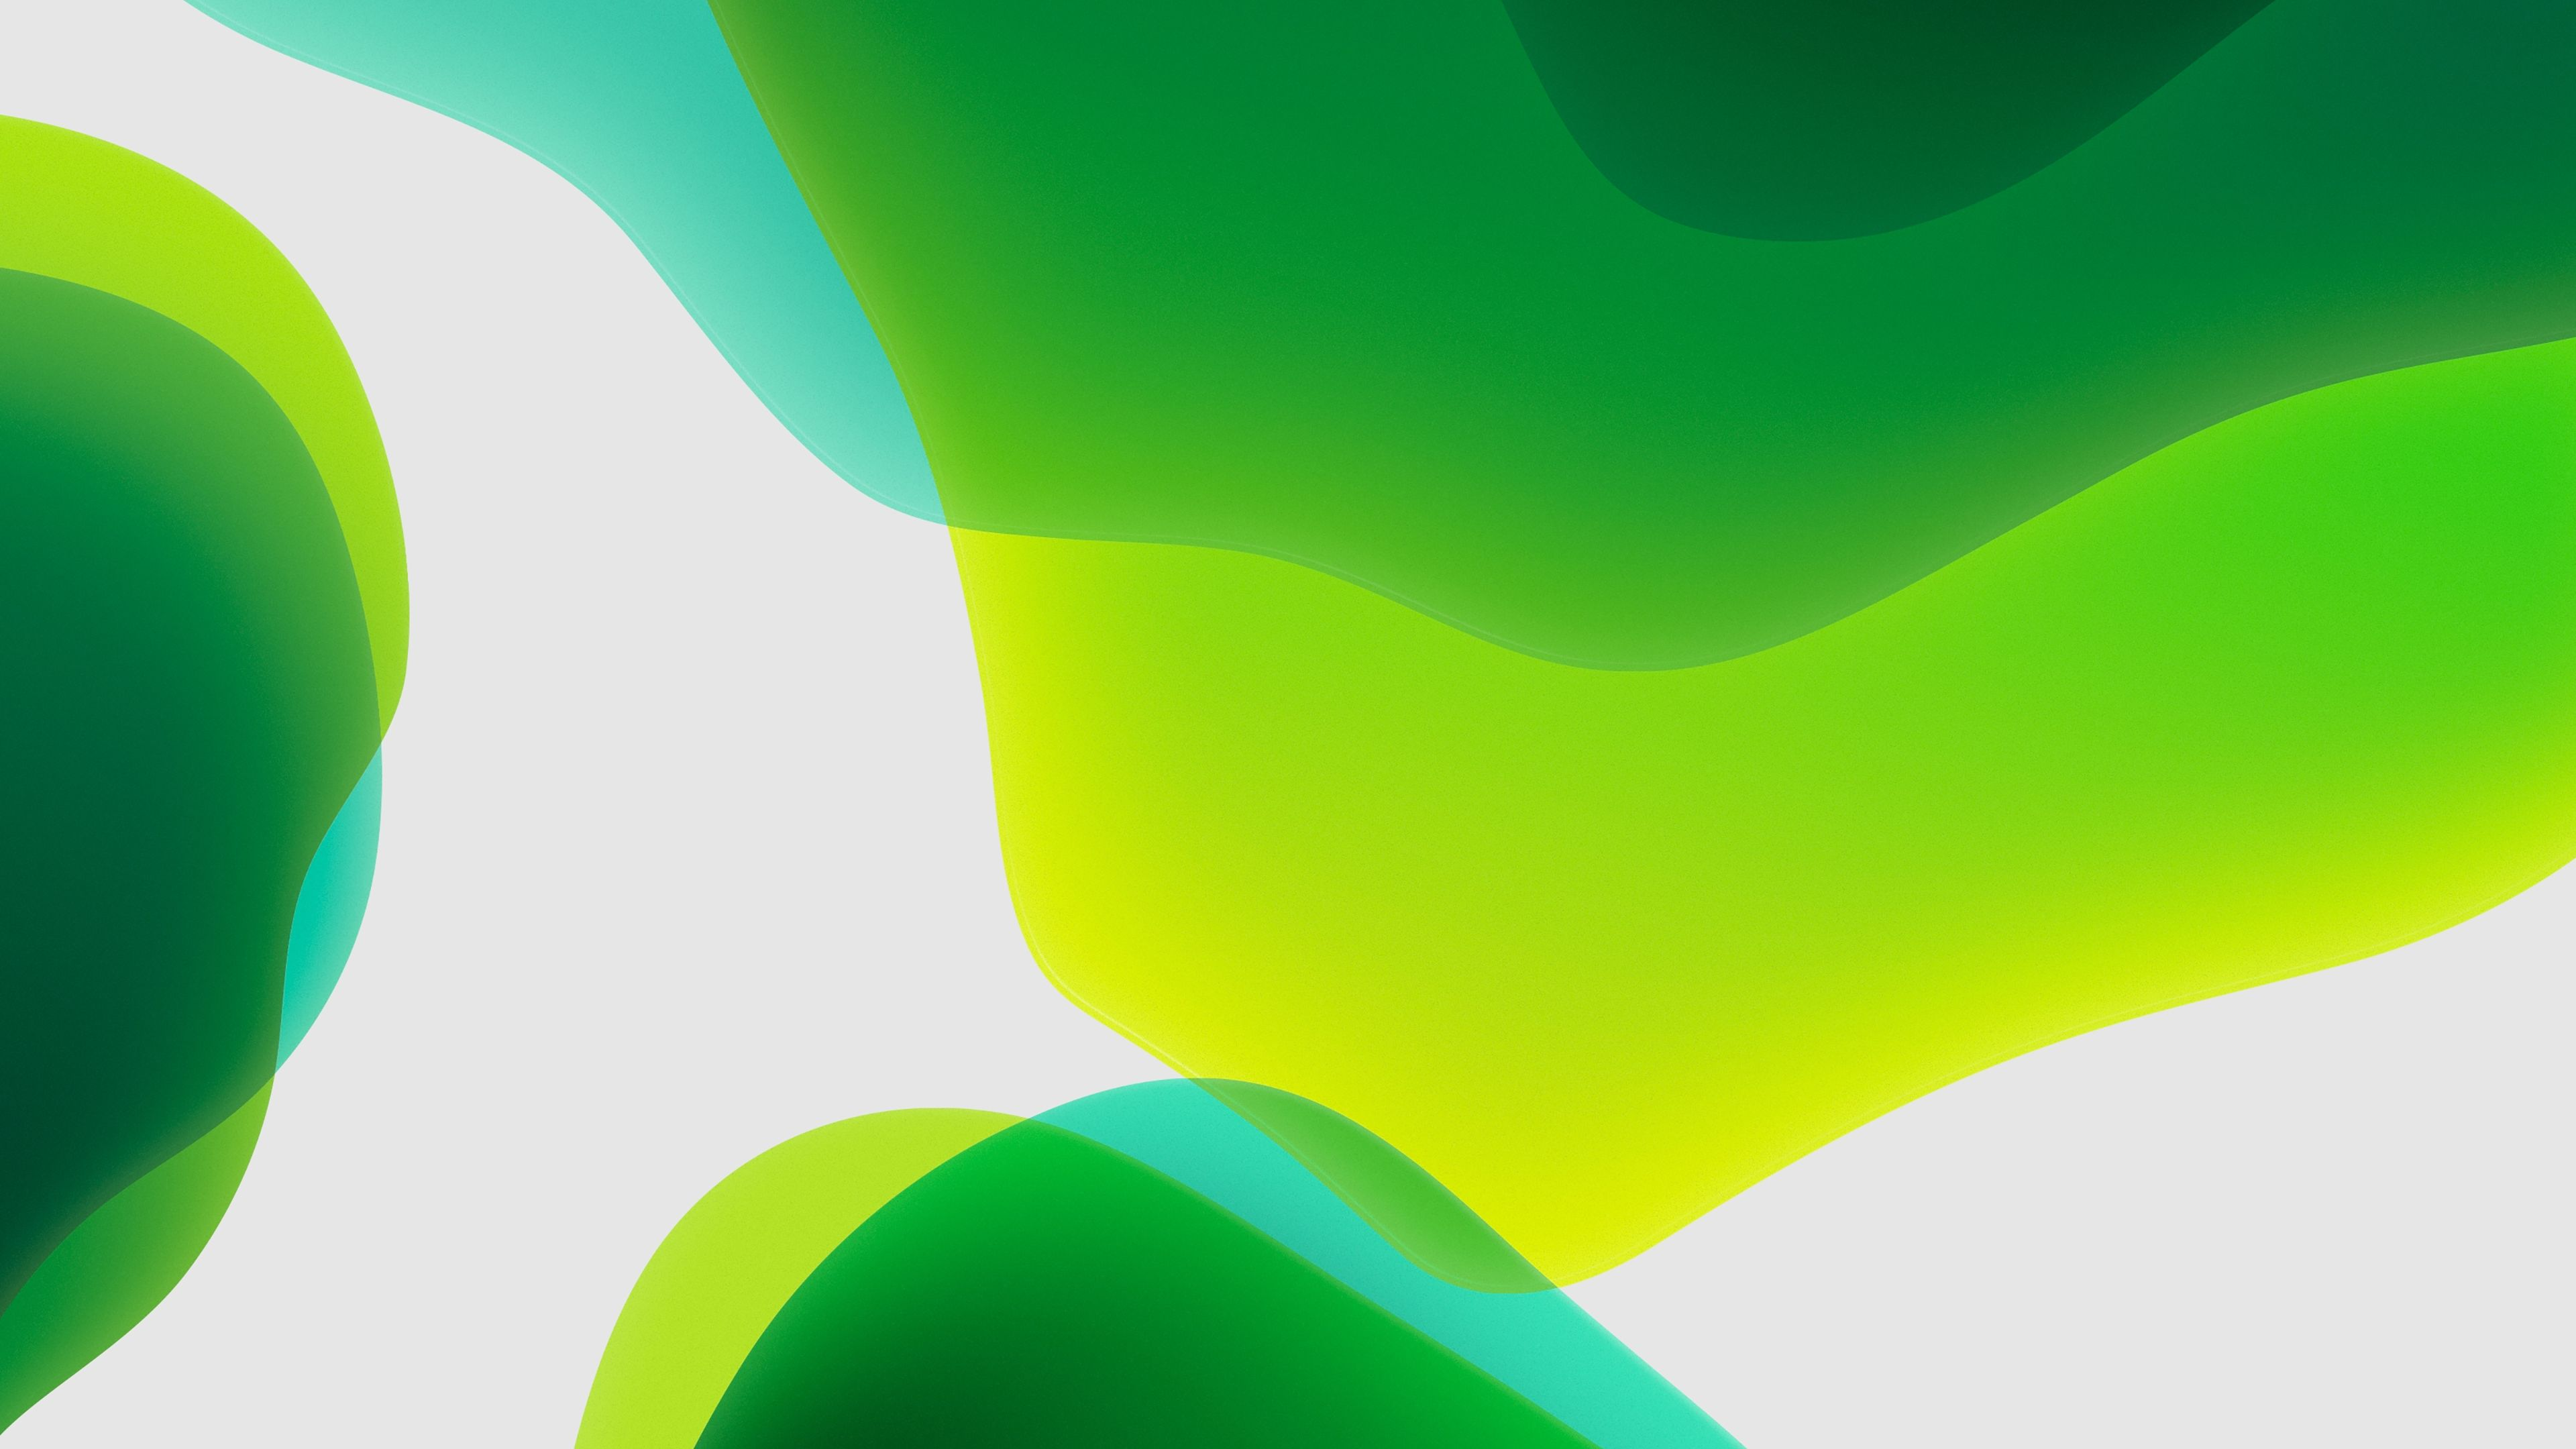 3840x2160 iOS 13 iPadOS Green Fondos de pantalla | HD Wallpapers | ID # 28571